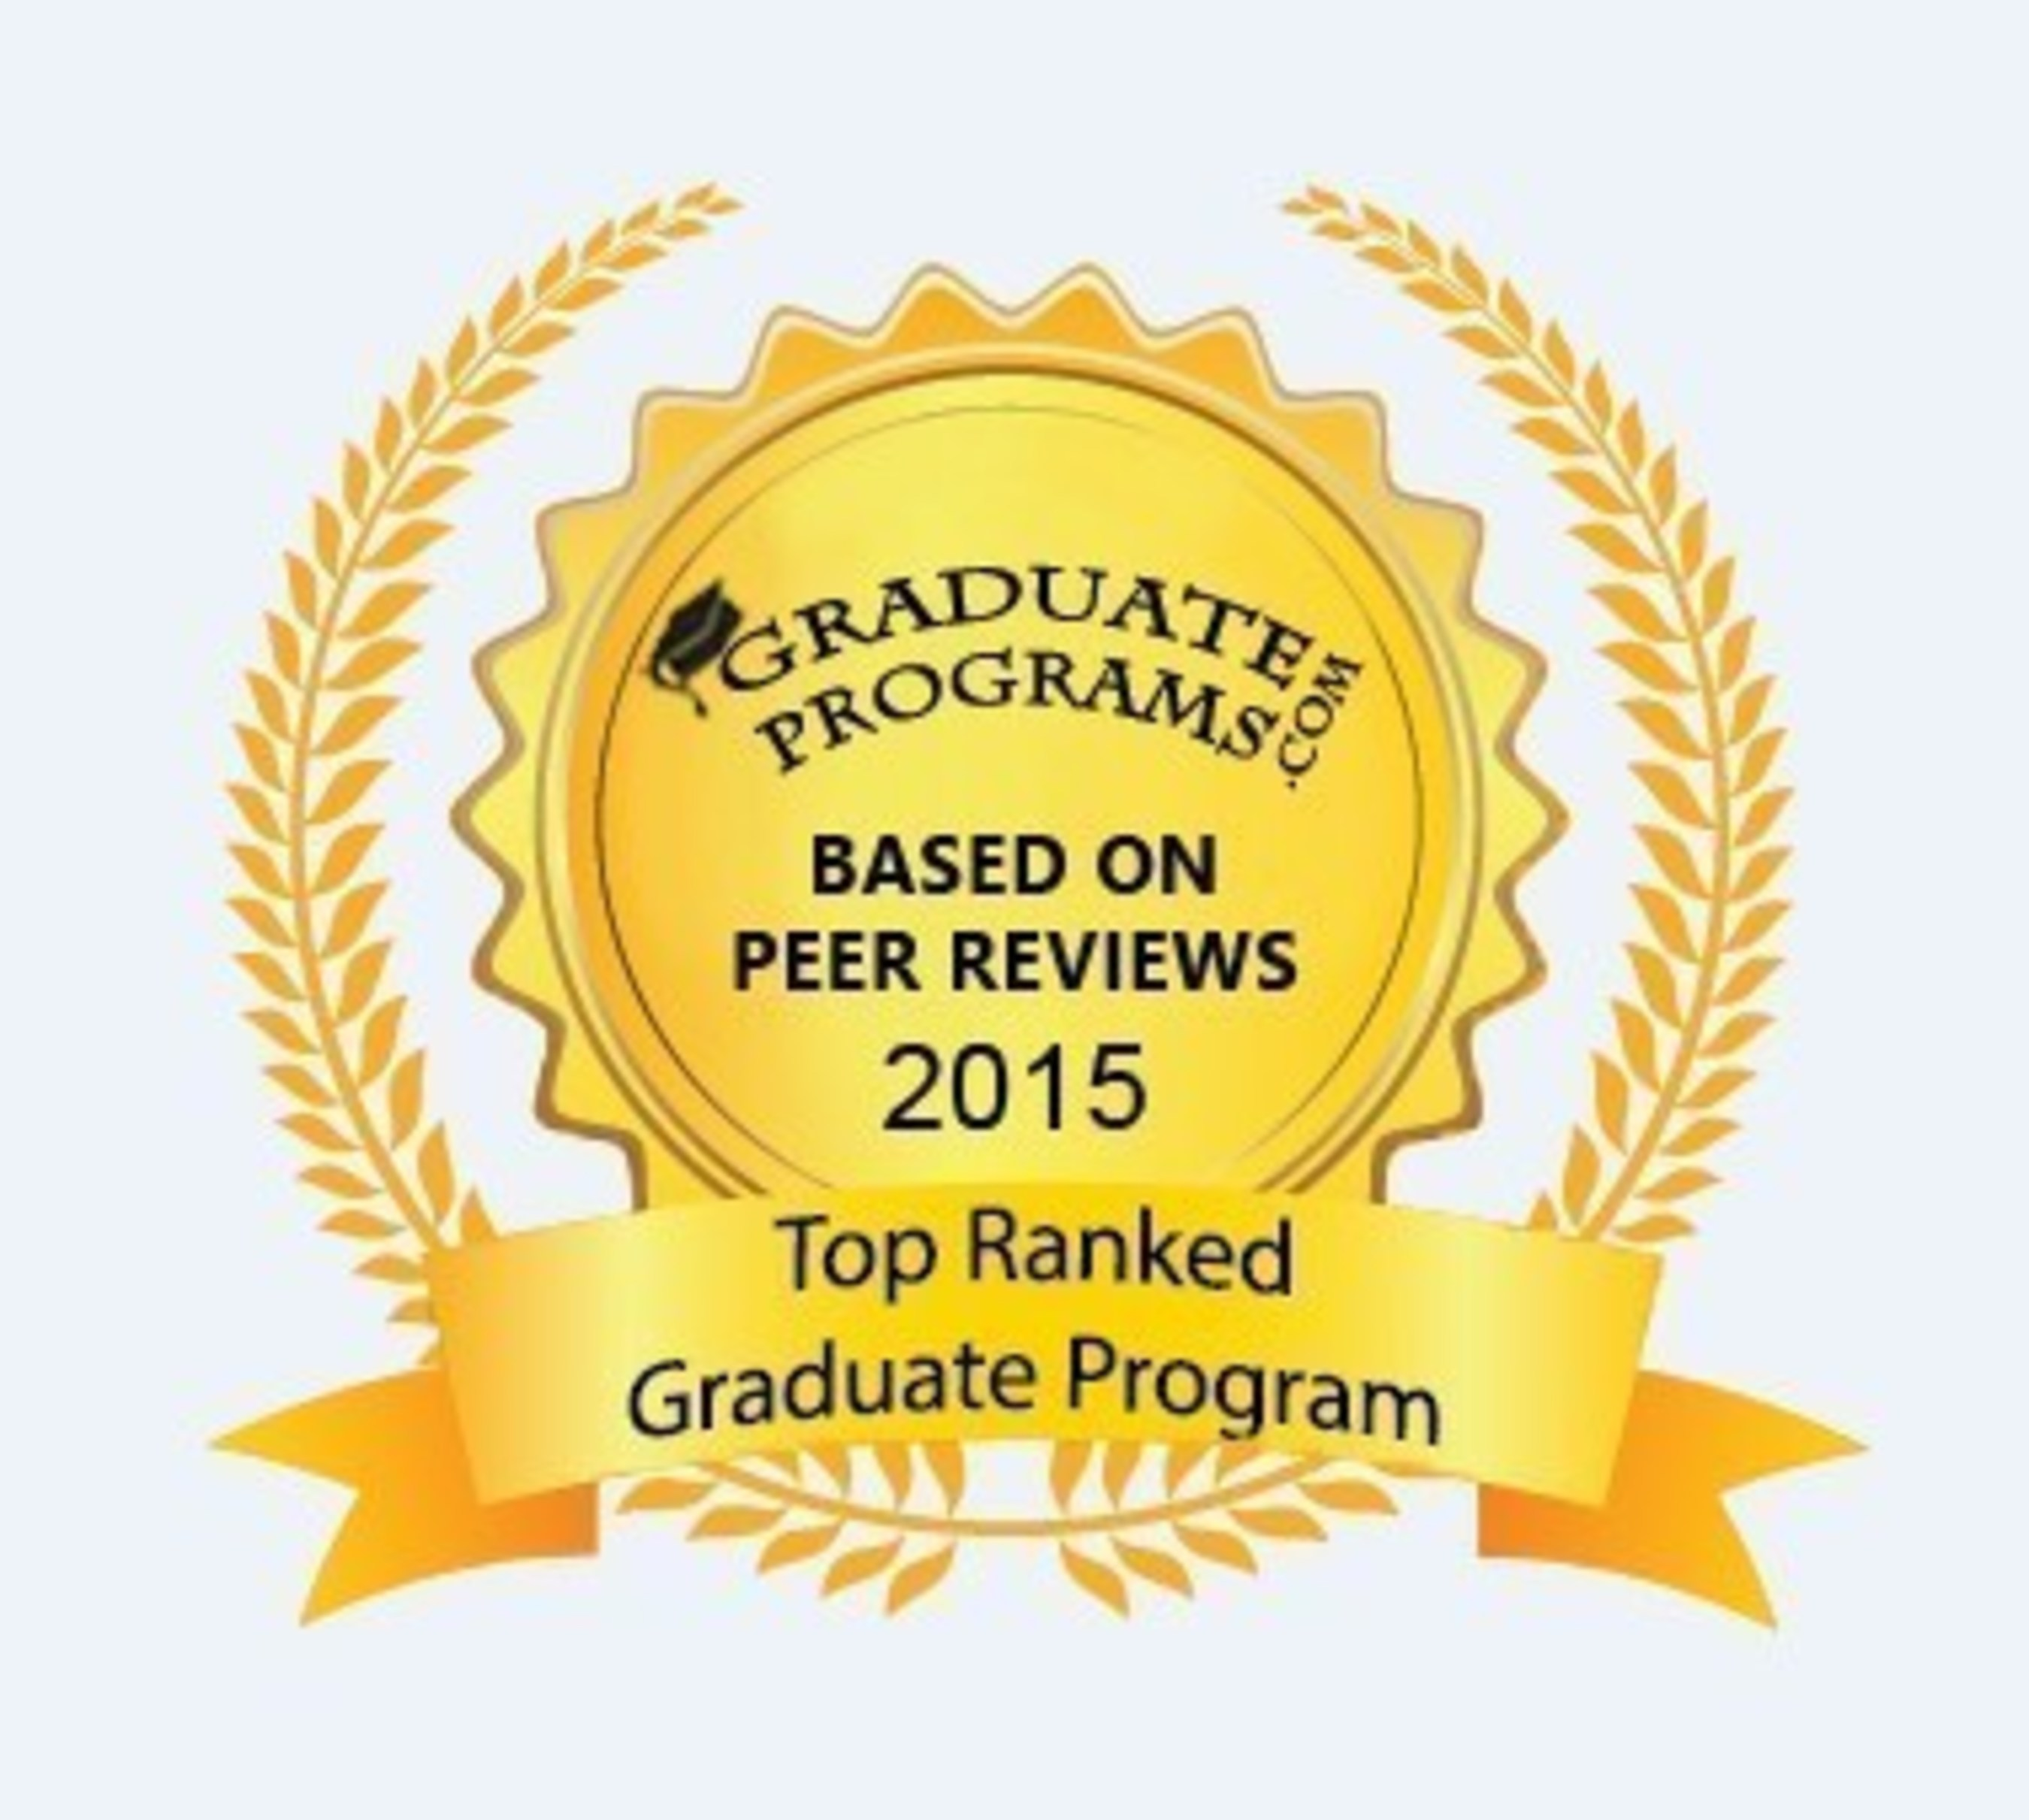 Graduateprograms.com Announces Top Online Graduate Program Rankings